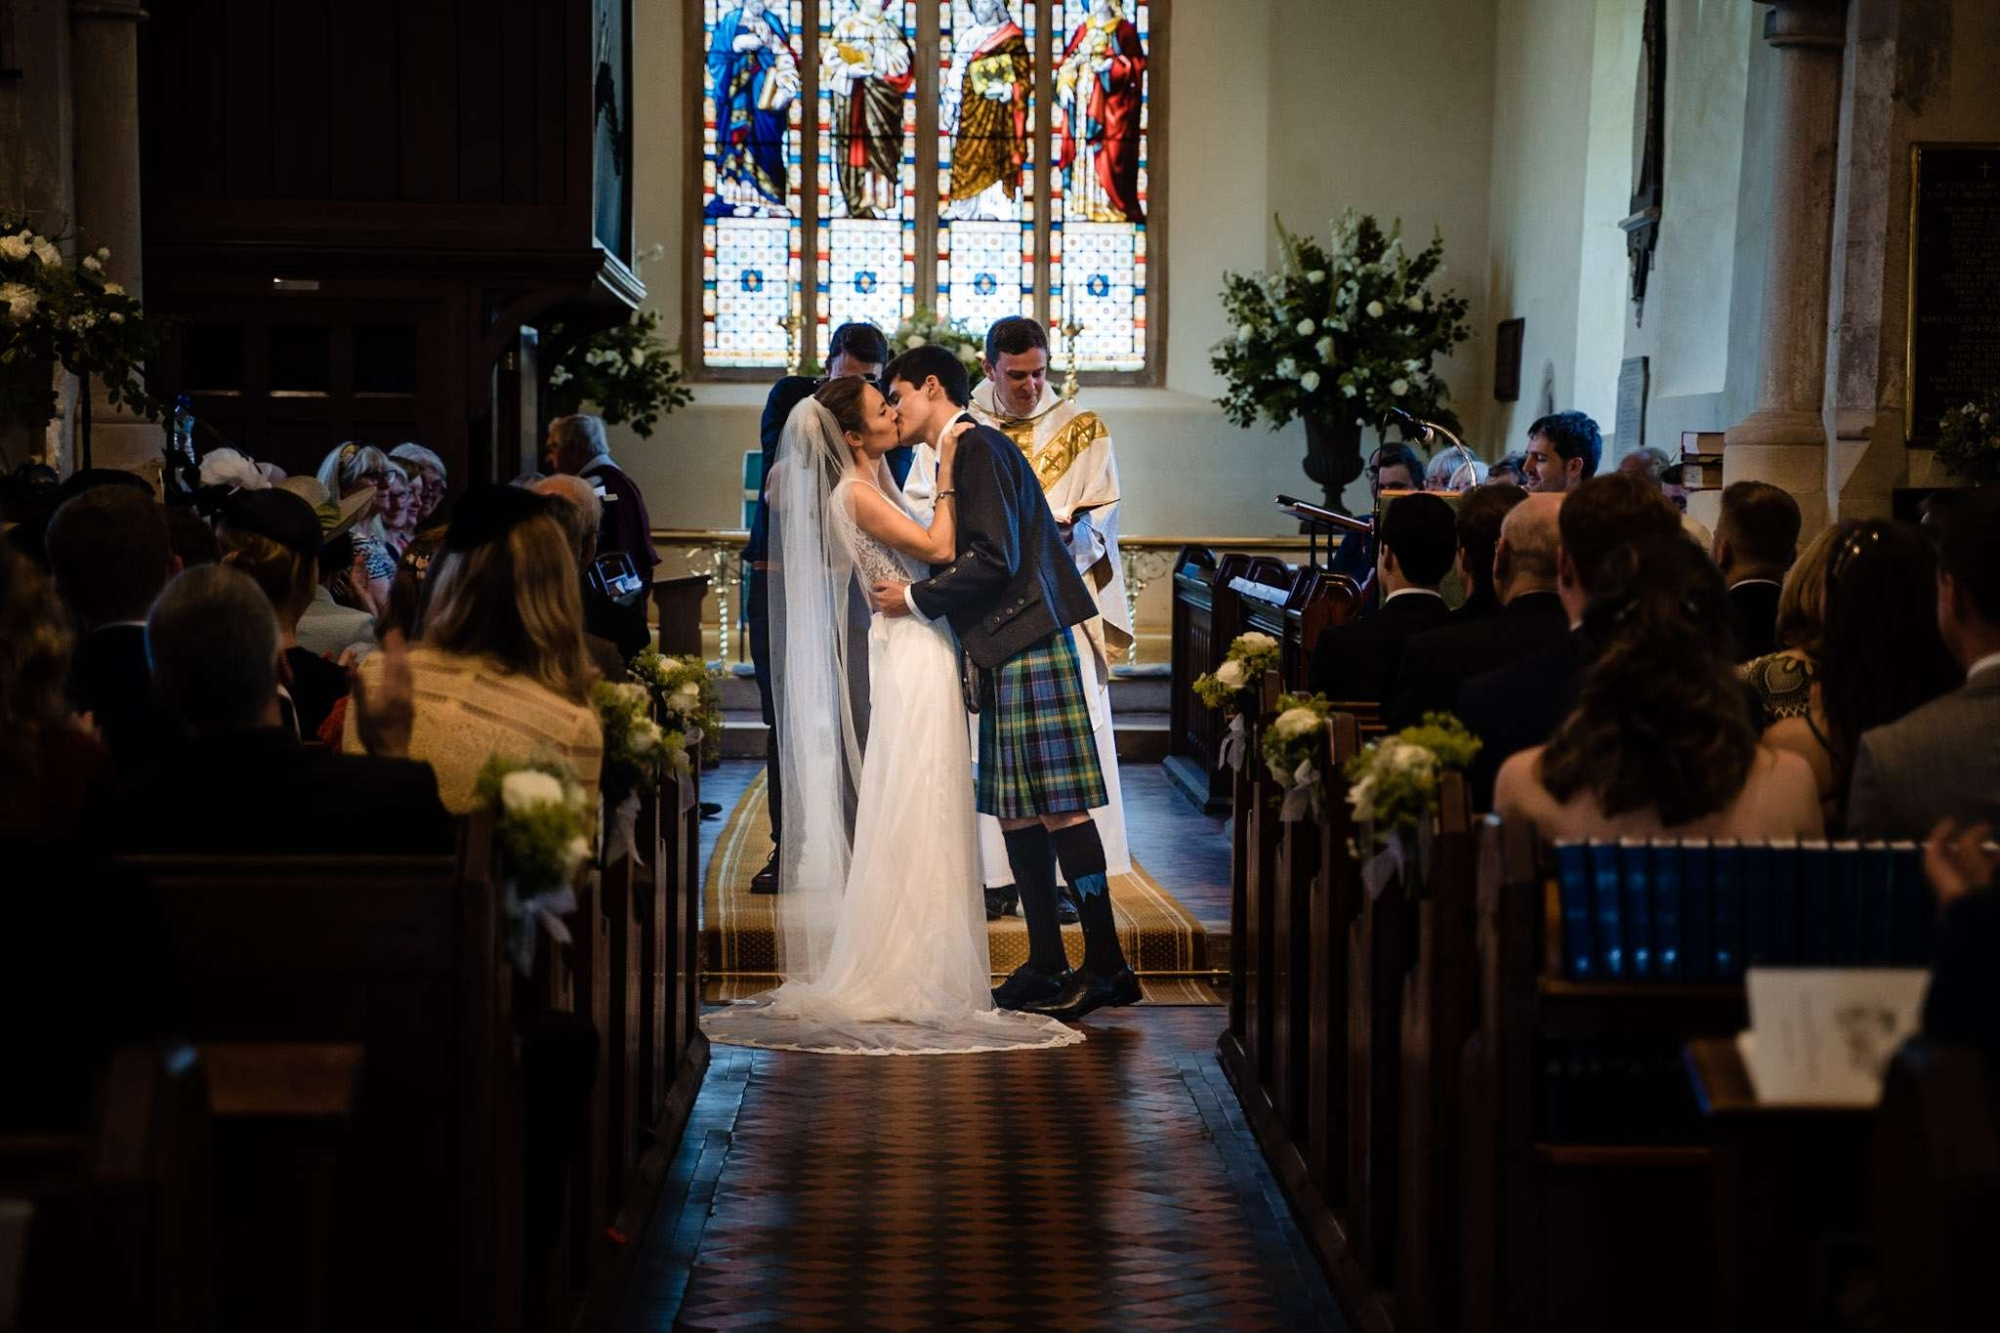 A bride and groom have their first kiss in a church